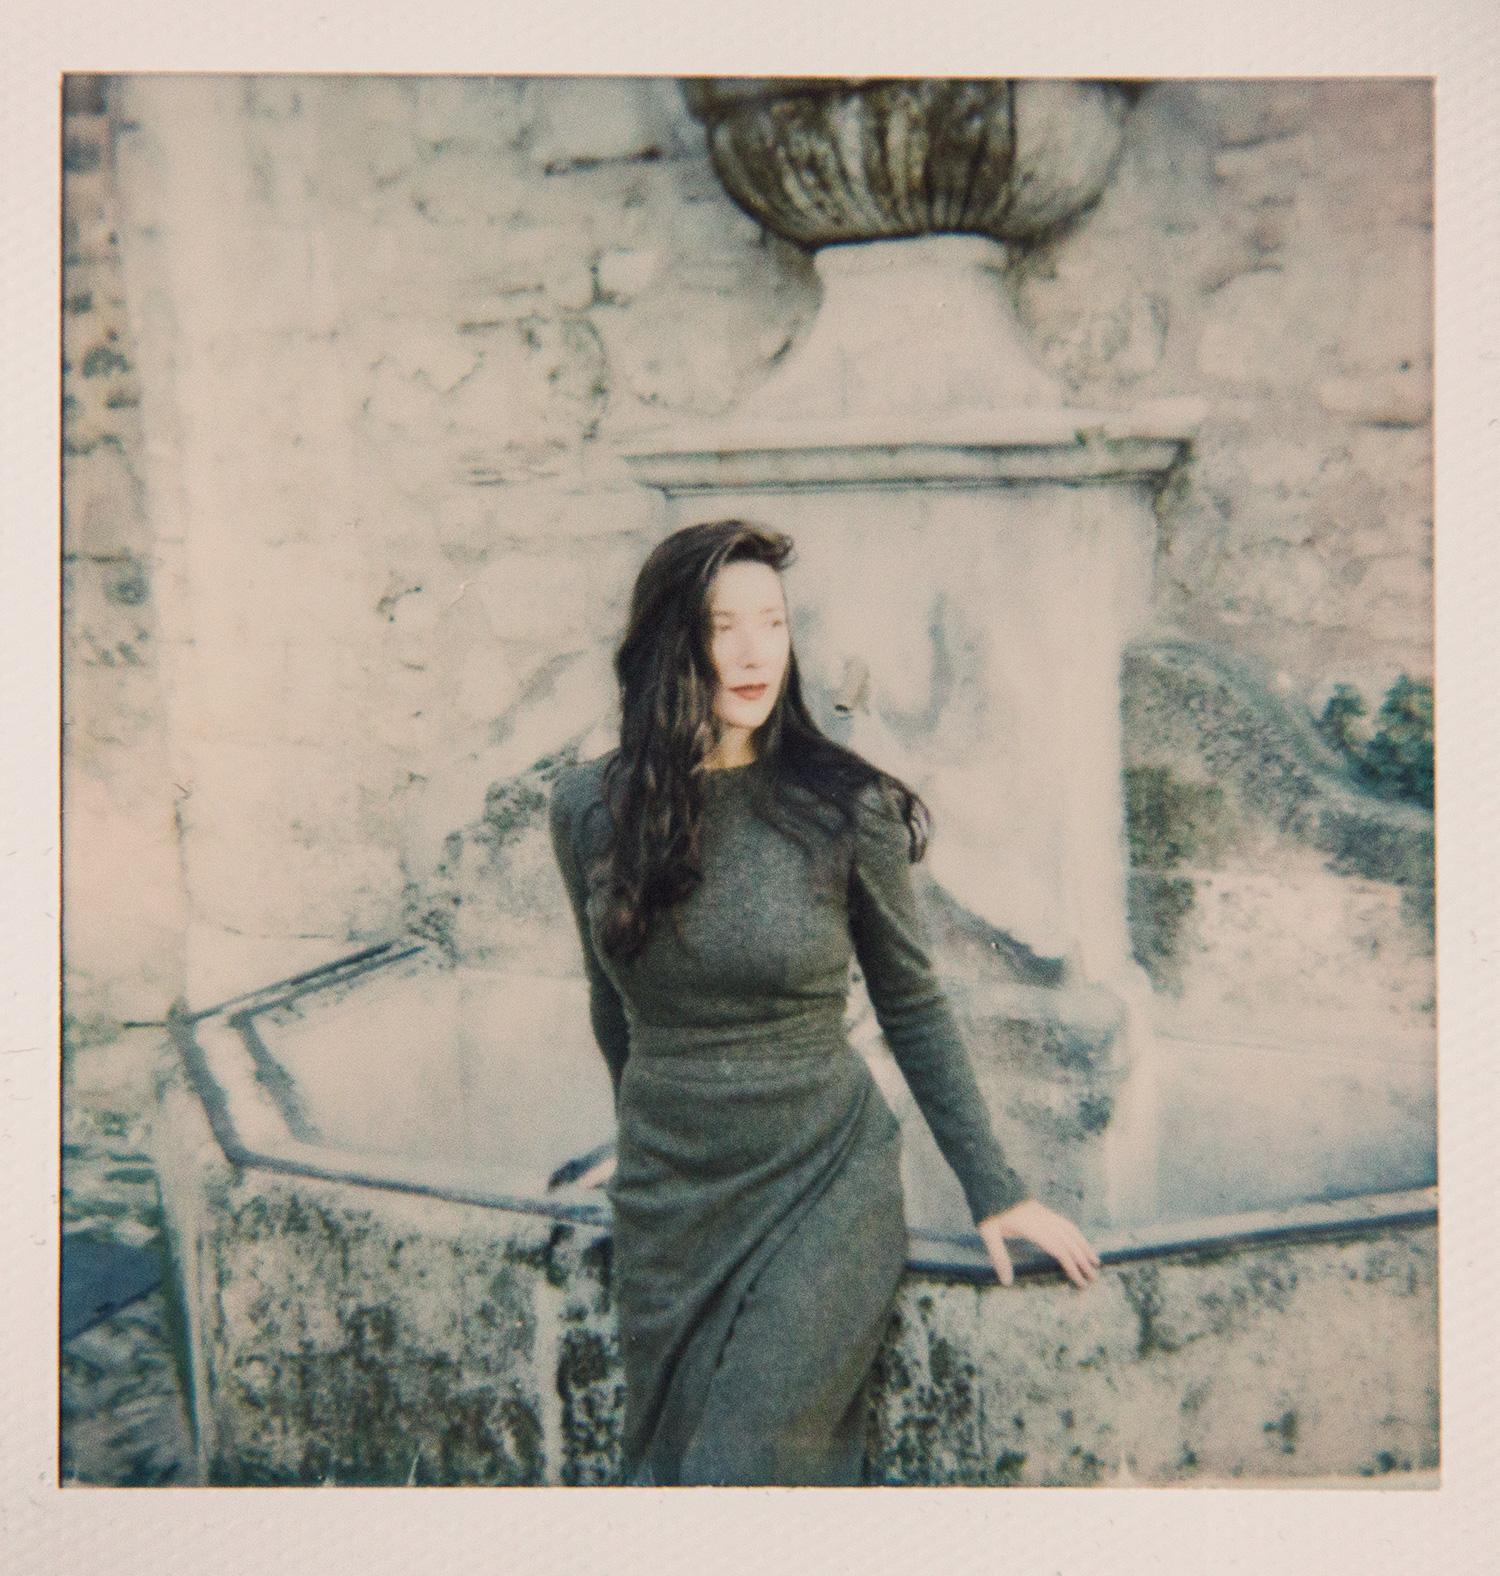 Testing the new I-1 analog camera by Impossible Projects